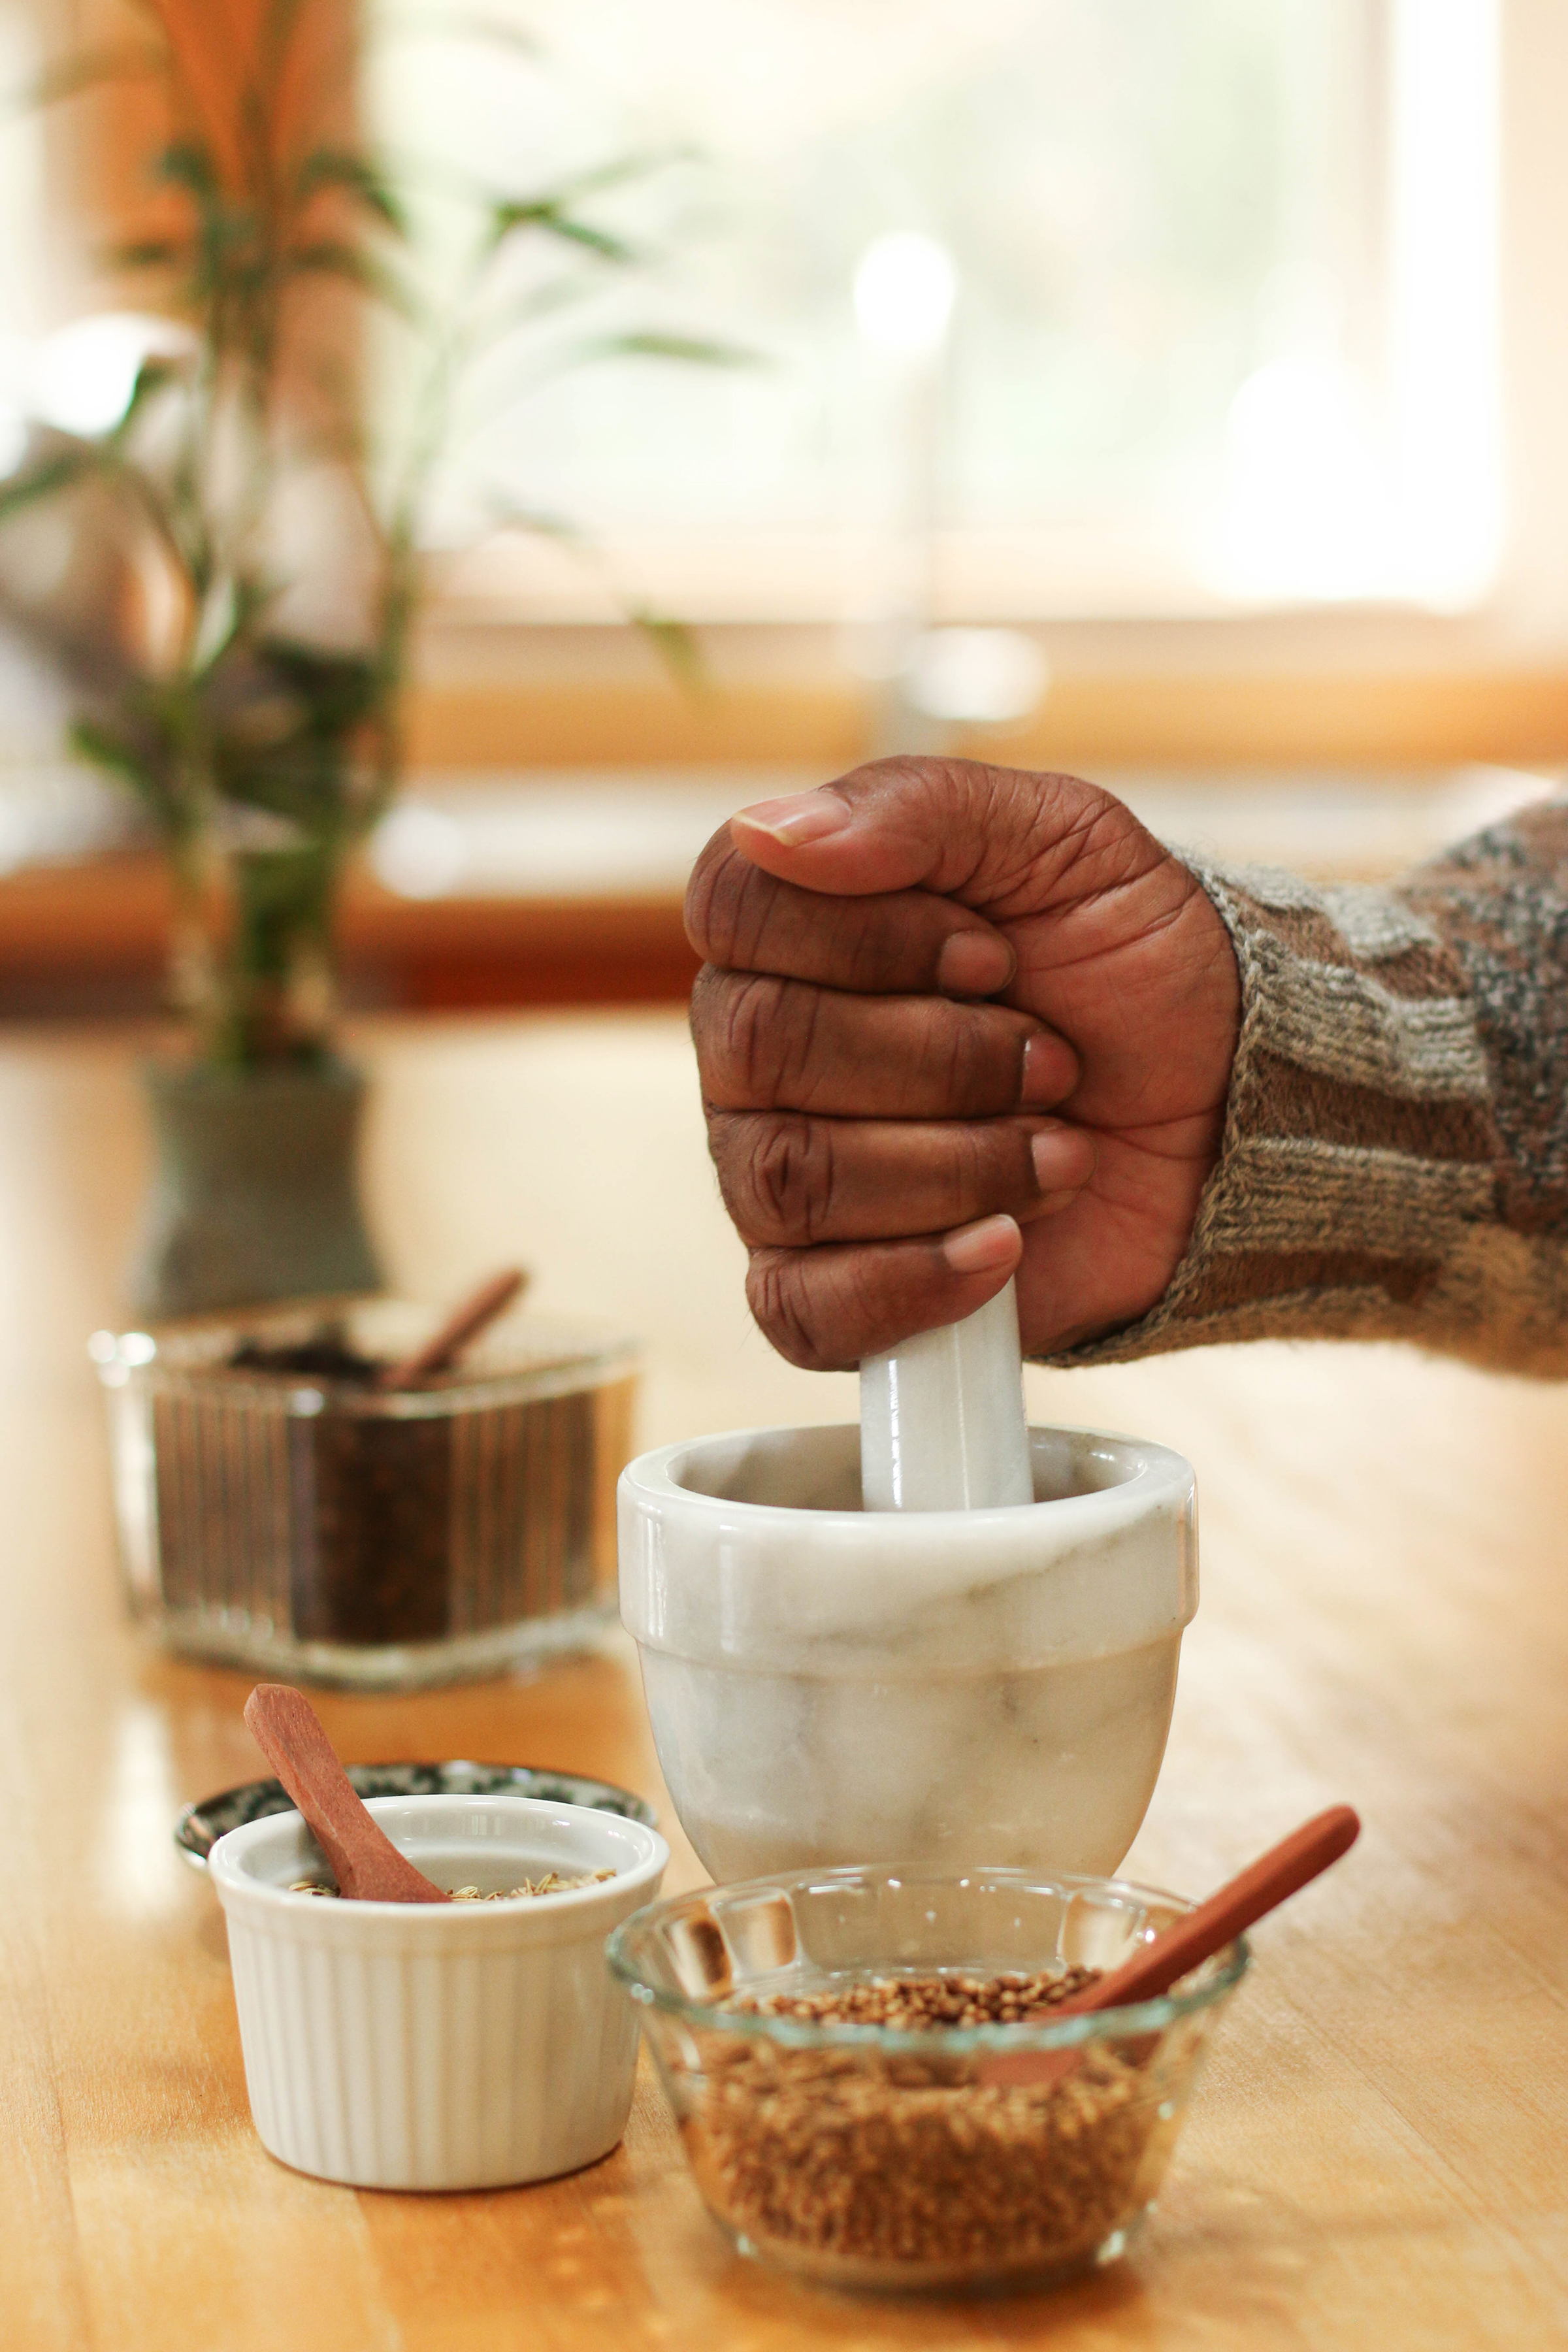 hand-crushing-spices-with-white-marble-mortar-and-pestle-surrounded-by-bowls-of-whole-spices